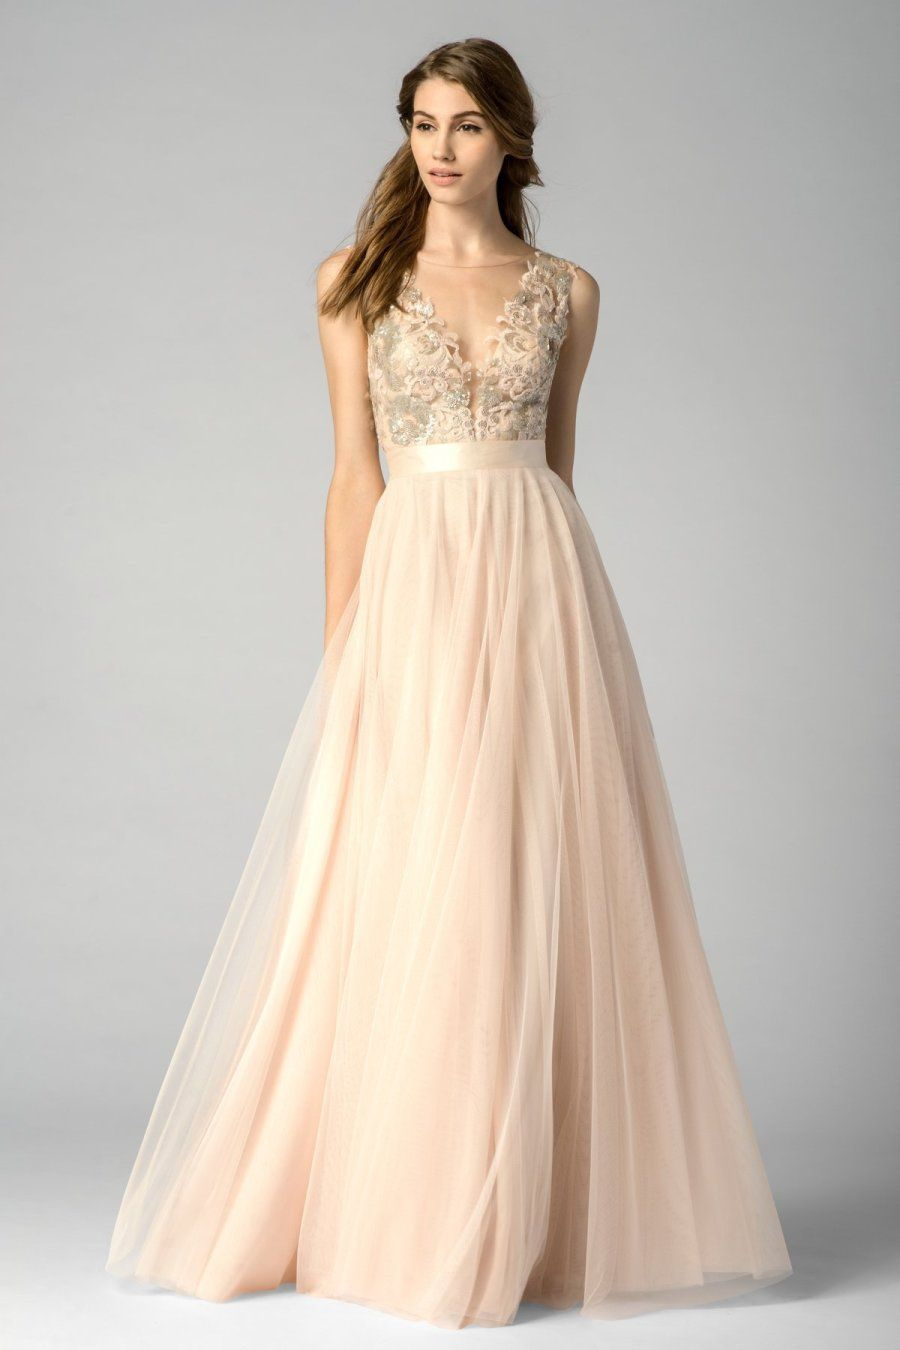 Get the look taylor swifts blush gold reem acra maid of honor shop watters bridesmaid dress in bobbinet at weddington way find the perfect made to order bridesmaid dresses for your bridal party in your favorite ombrellifo Choice Image